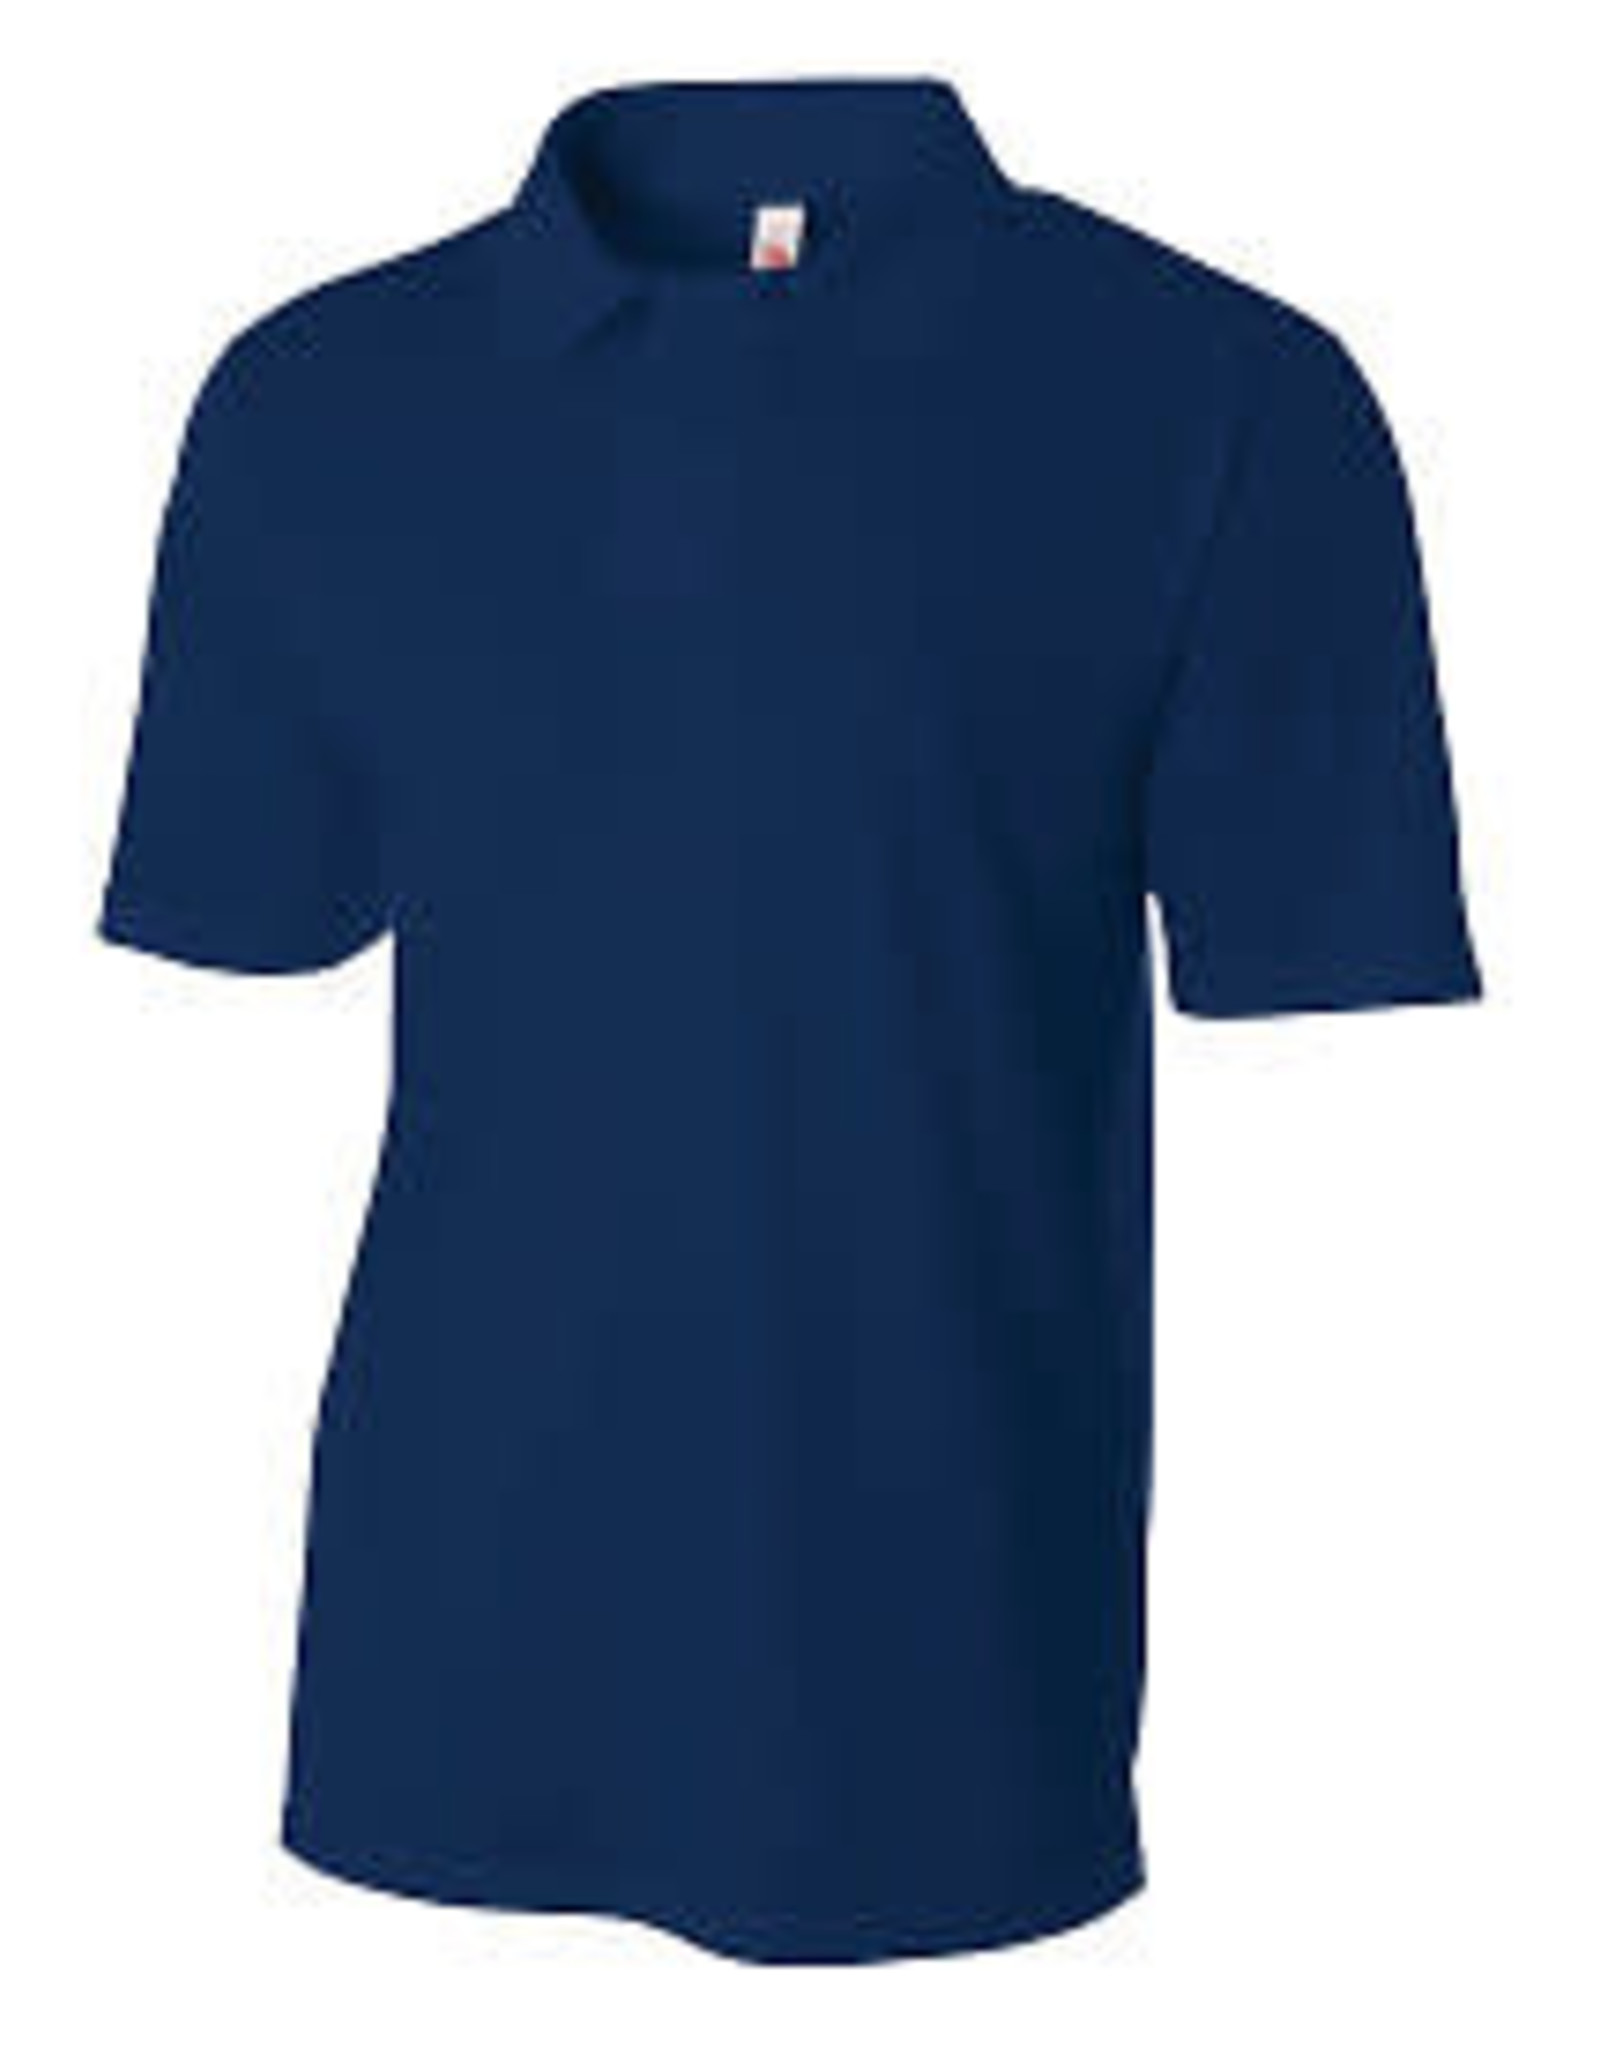 A4 PERFORMANCE POLO - TEXTURED